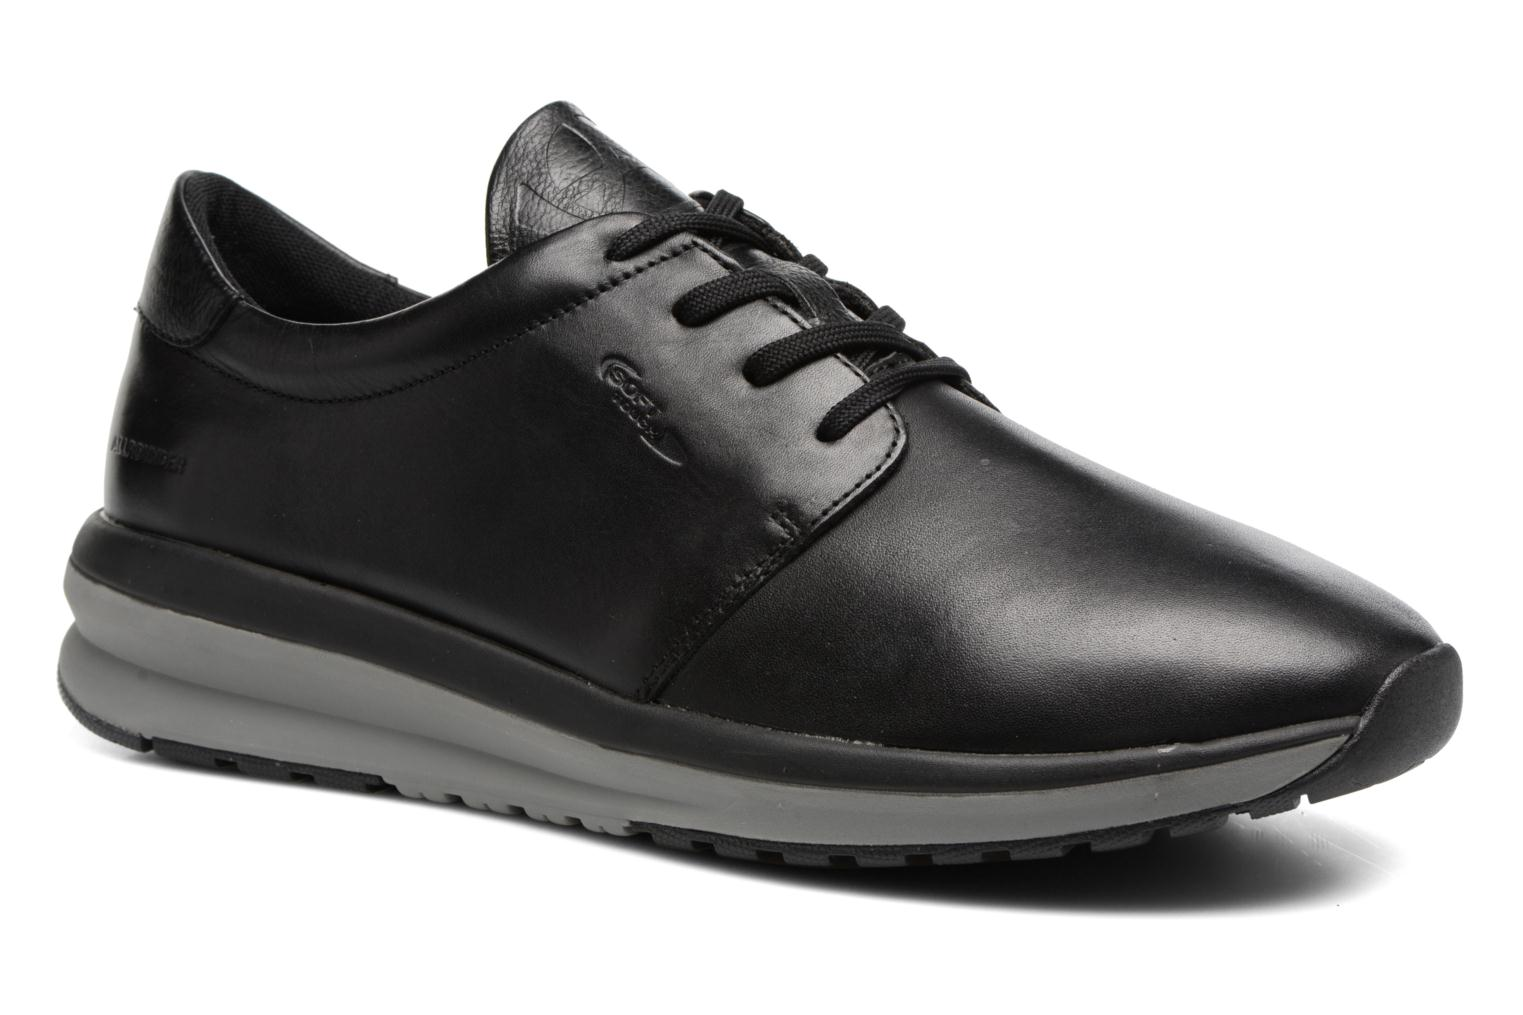 Marques Chaussure homme Allrounder by Mephisto homme Etax Burnish Black